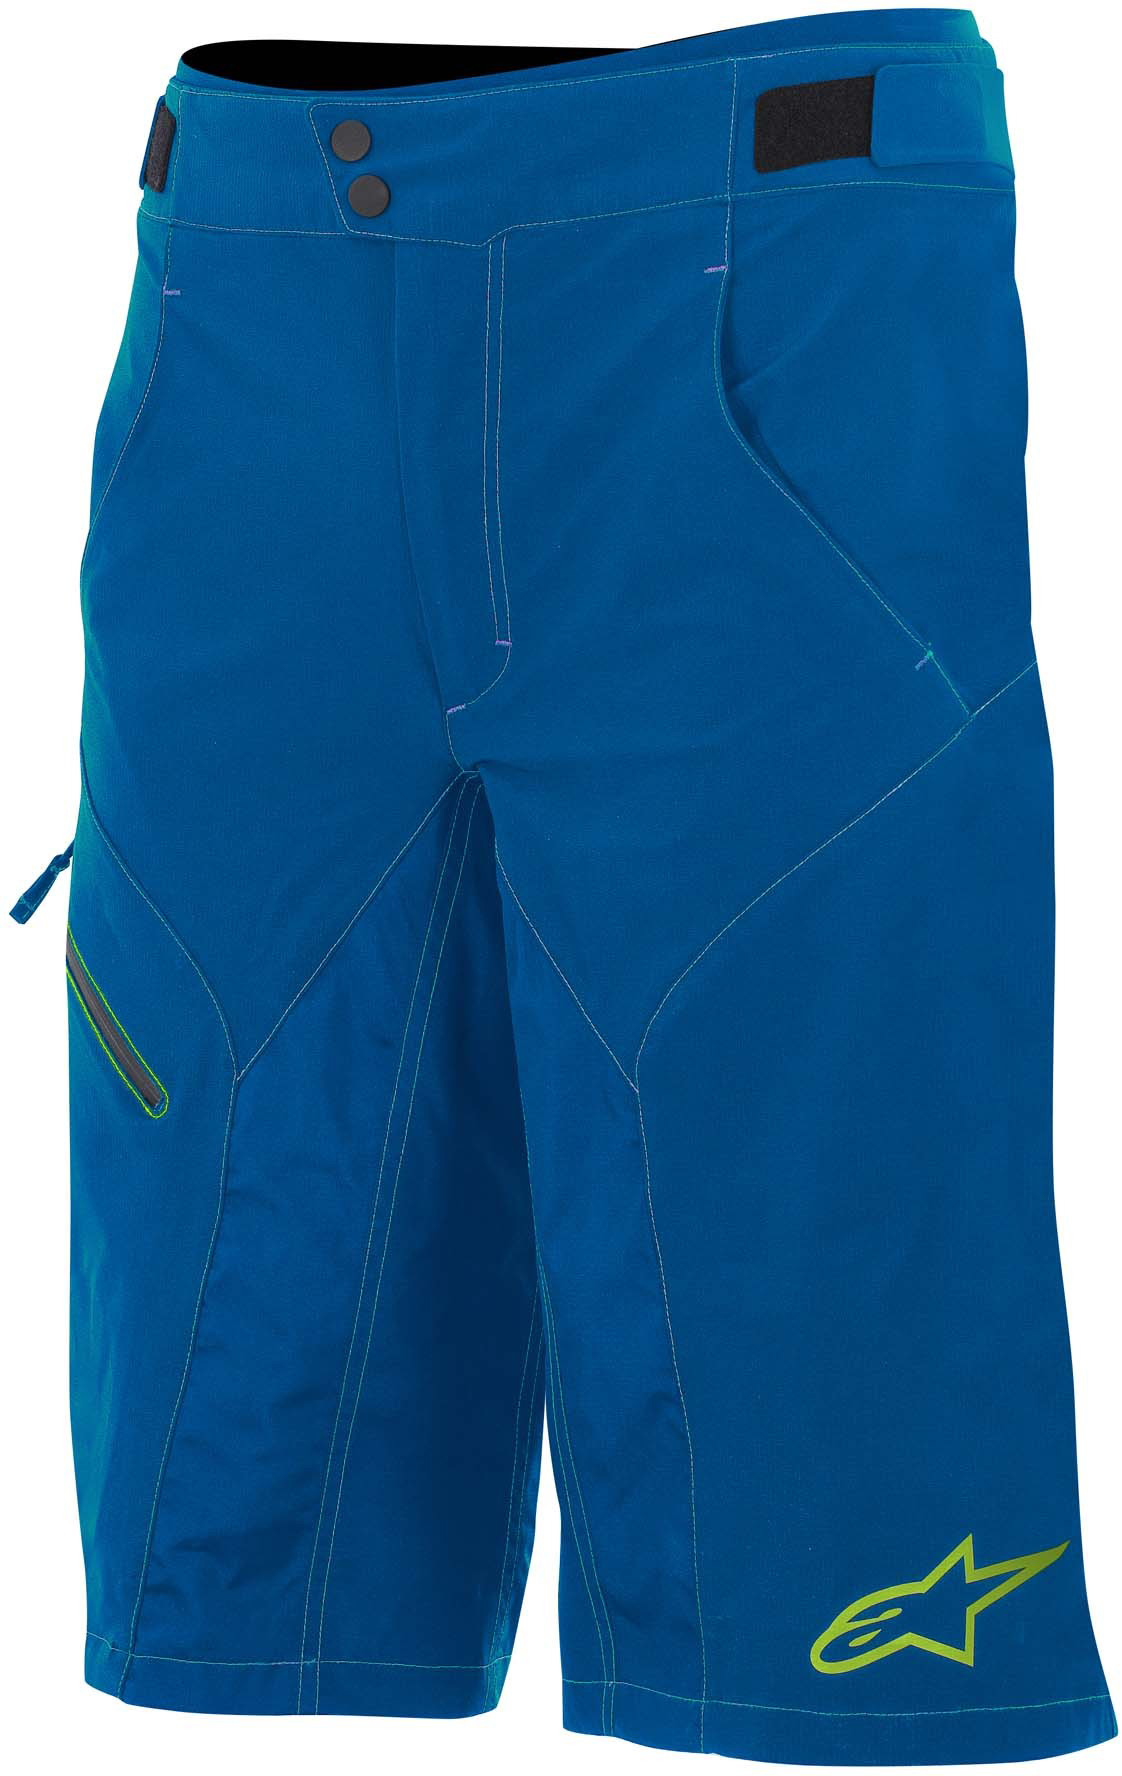 Alpinestars Outrider Water Resistant Base Shorts | Trousers